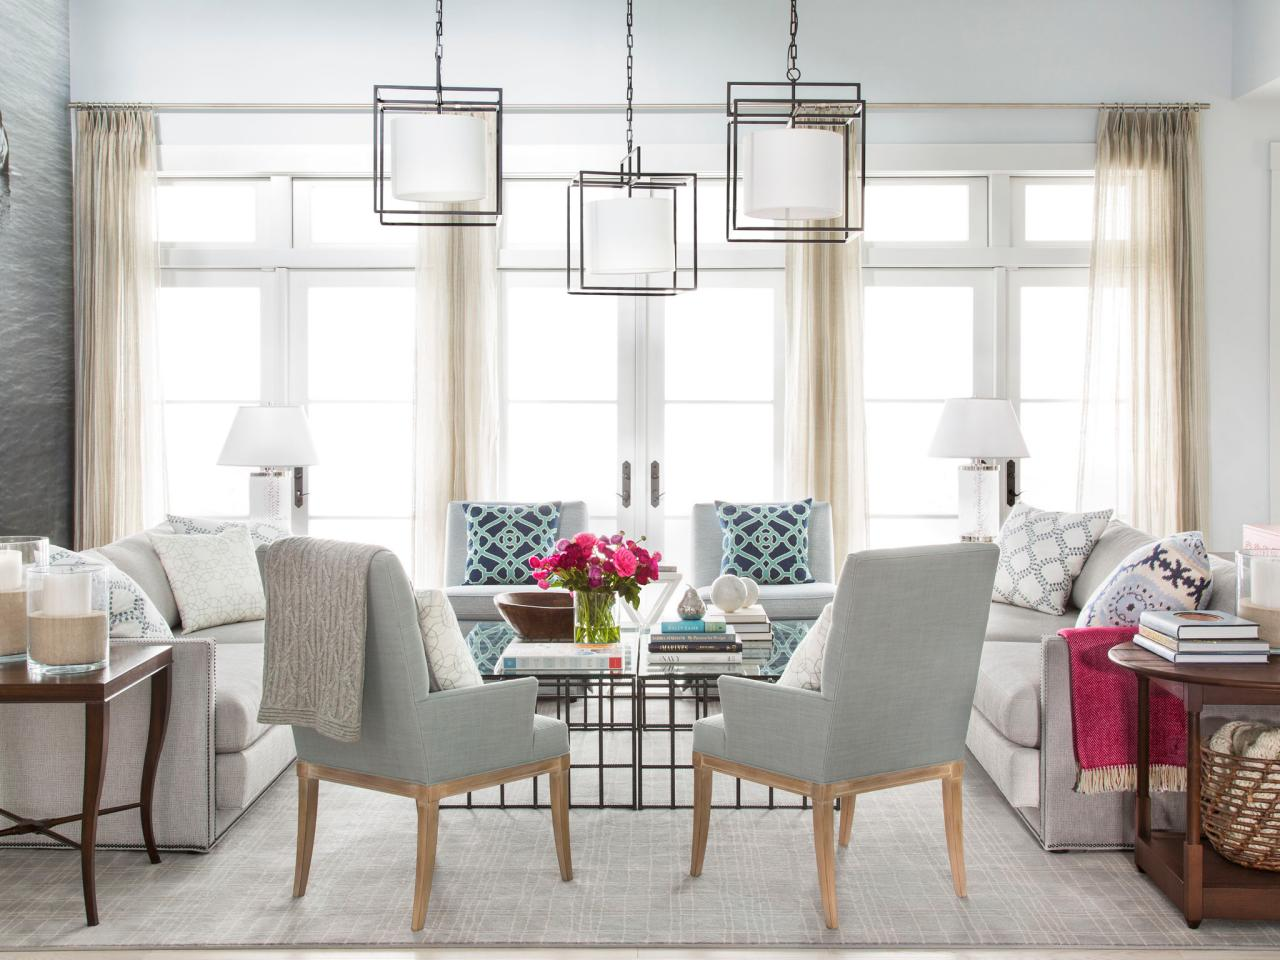 Dcor Trends for 2016 Home By Hattan